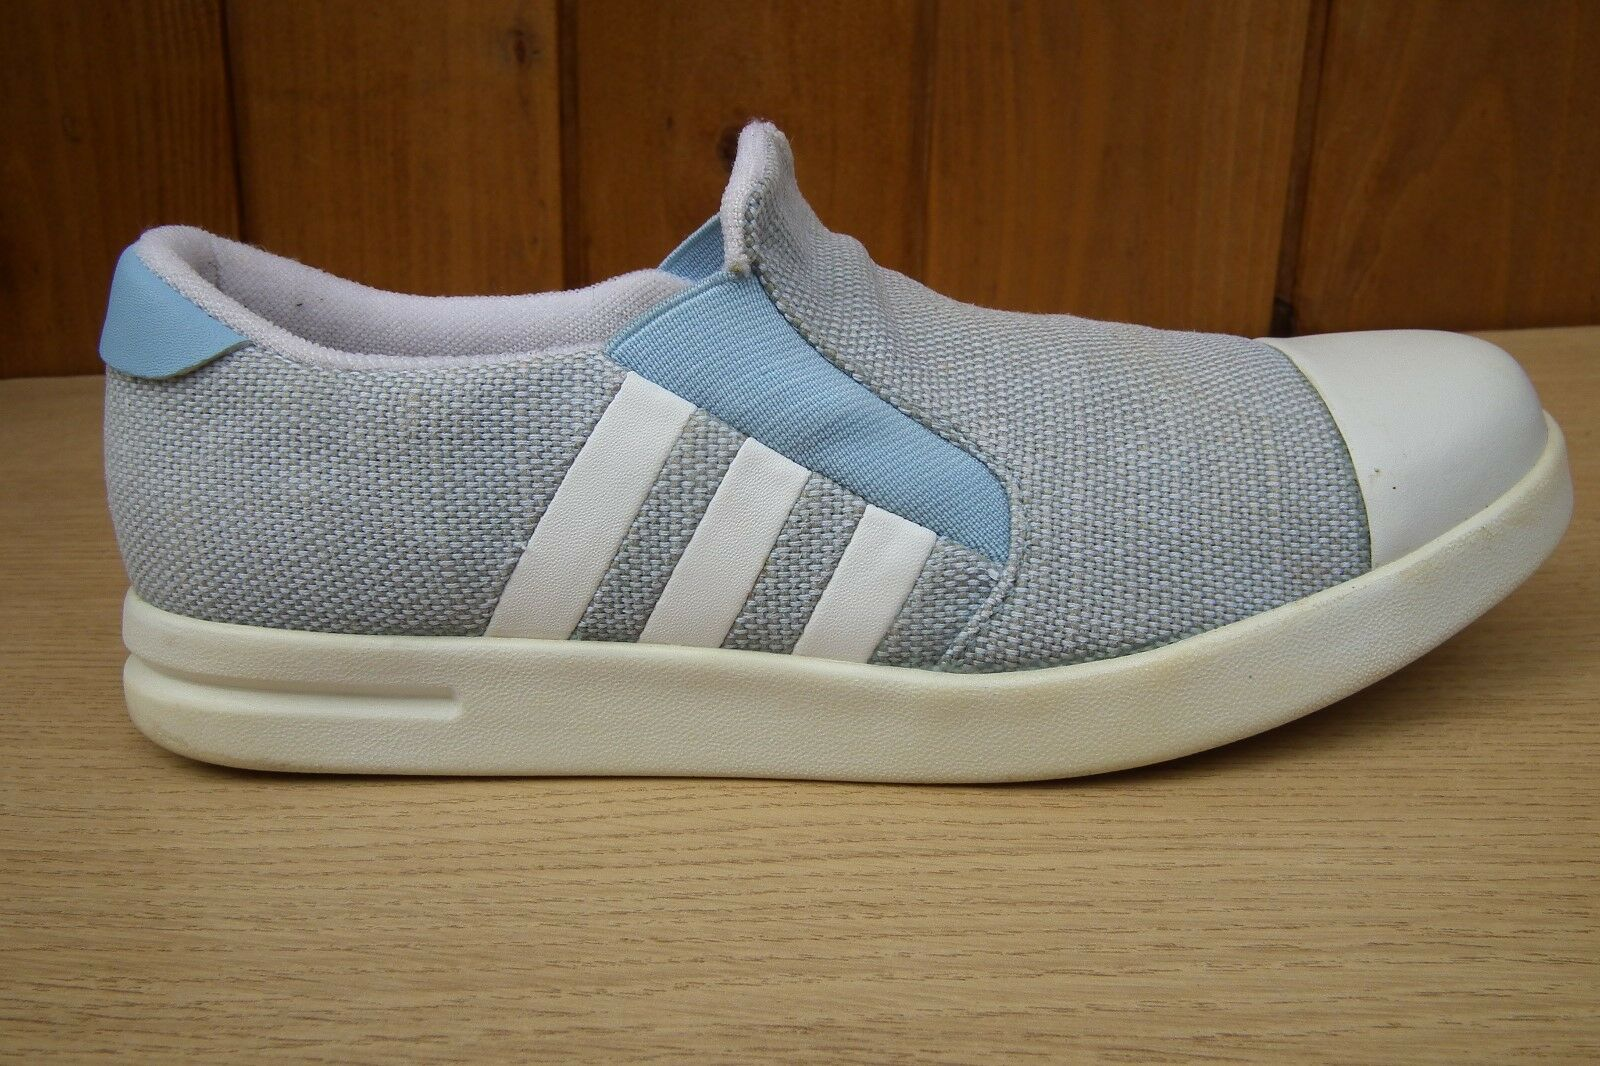 ADIDAS DNS 642001 bluee Grey White Slip-on shoes Trainers Size